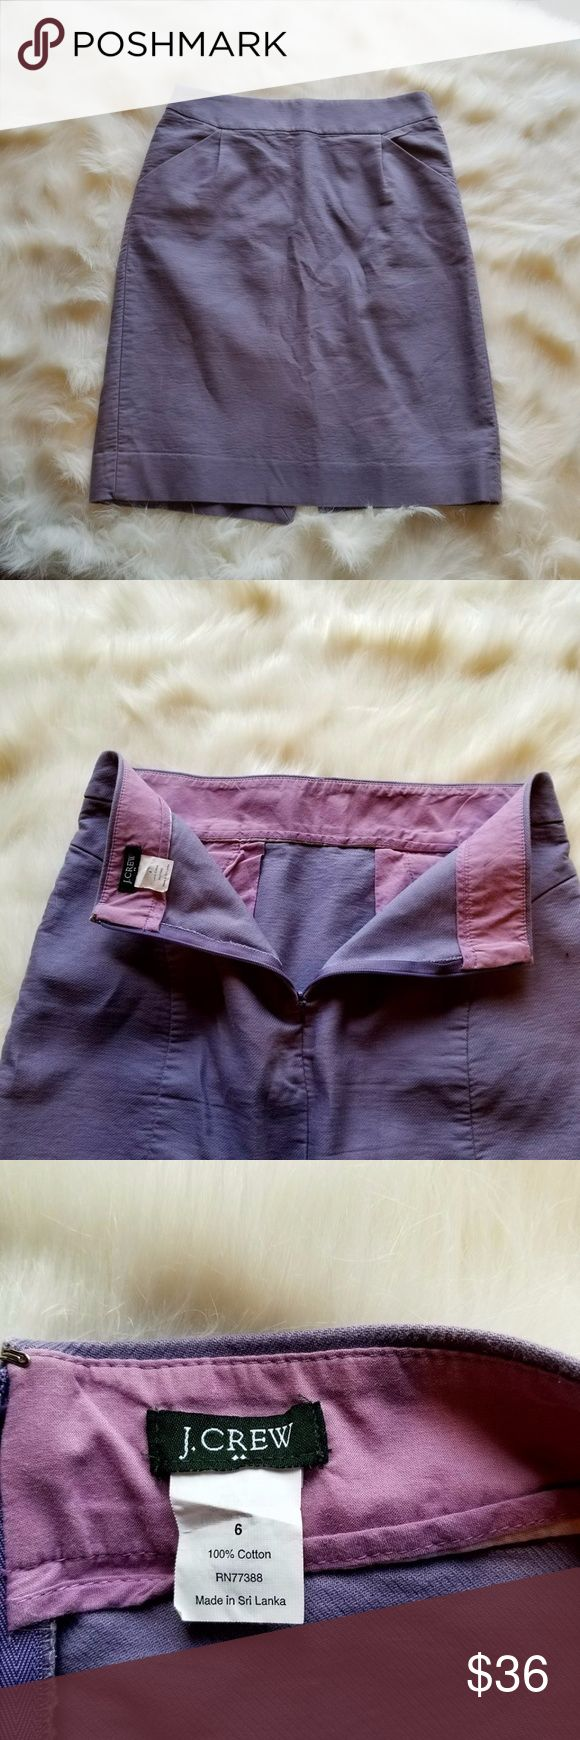 BOGO J.crew  Factory Purple Pencil Skirt 67)This skirt is J.crew Factory. It is a lovely lavender. It has two front pockets, 100% COTTON, zipper on the side, and machine wash cold.  Condition: EUC  Retail: $110 Size: 6 Length: 21  Waist: 30 Make a reasonable offer or add to a bundle for a private offer!  I do not model, mannequin photo upon request. J. Crew Factory Skirts Mini